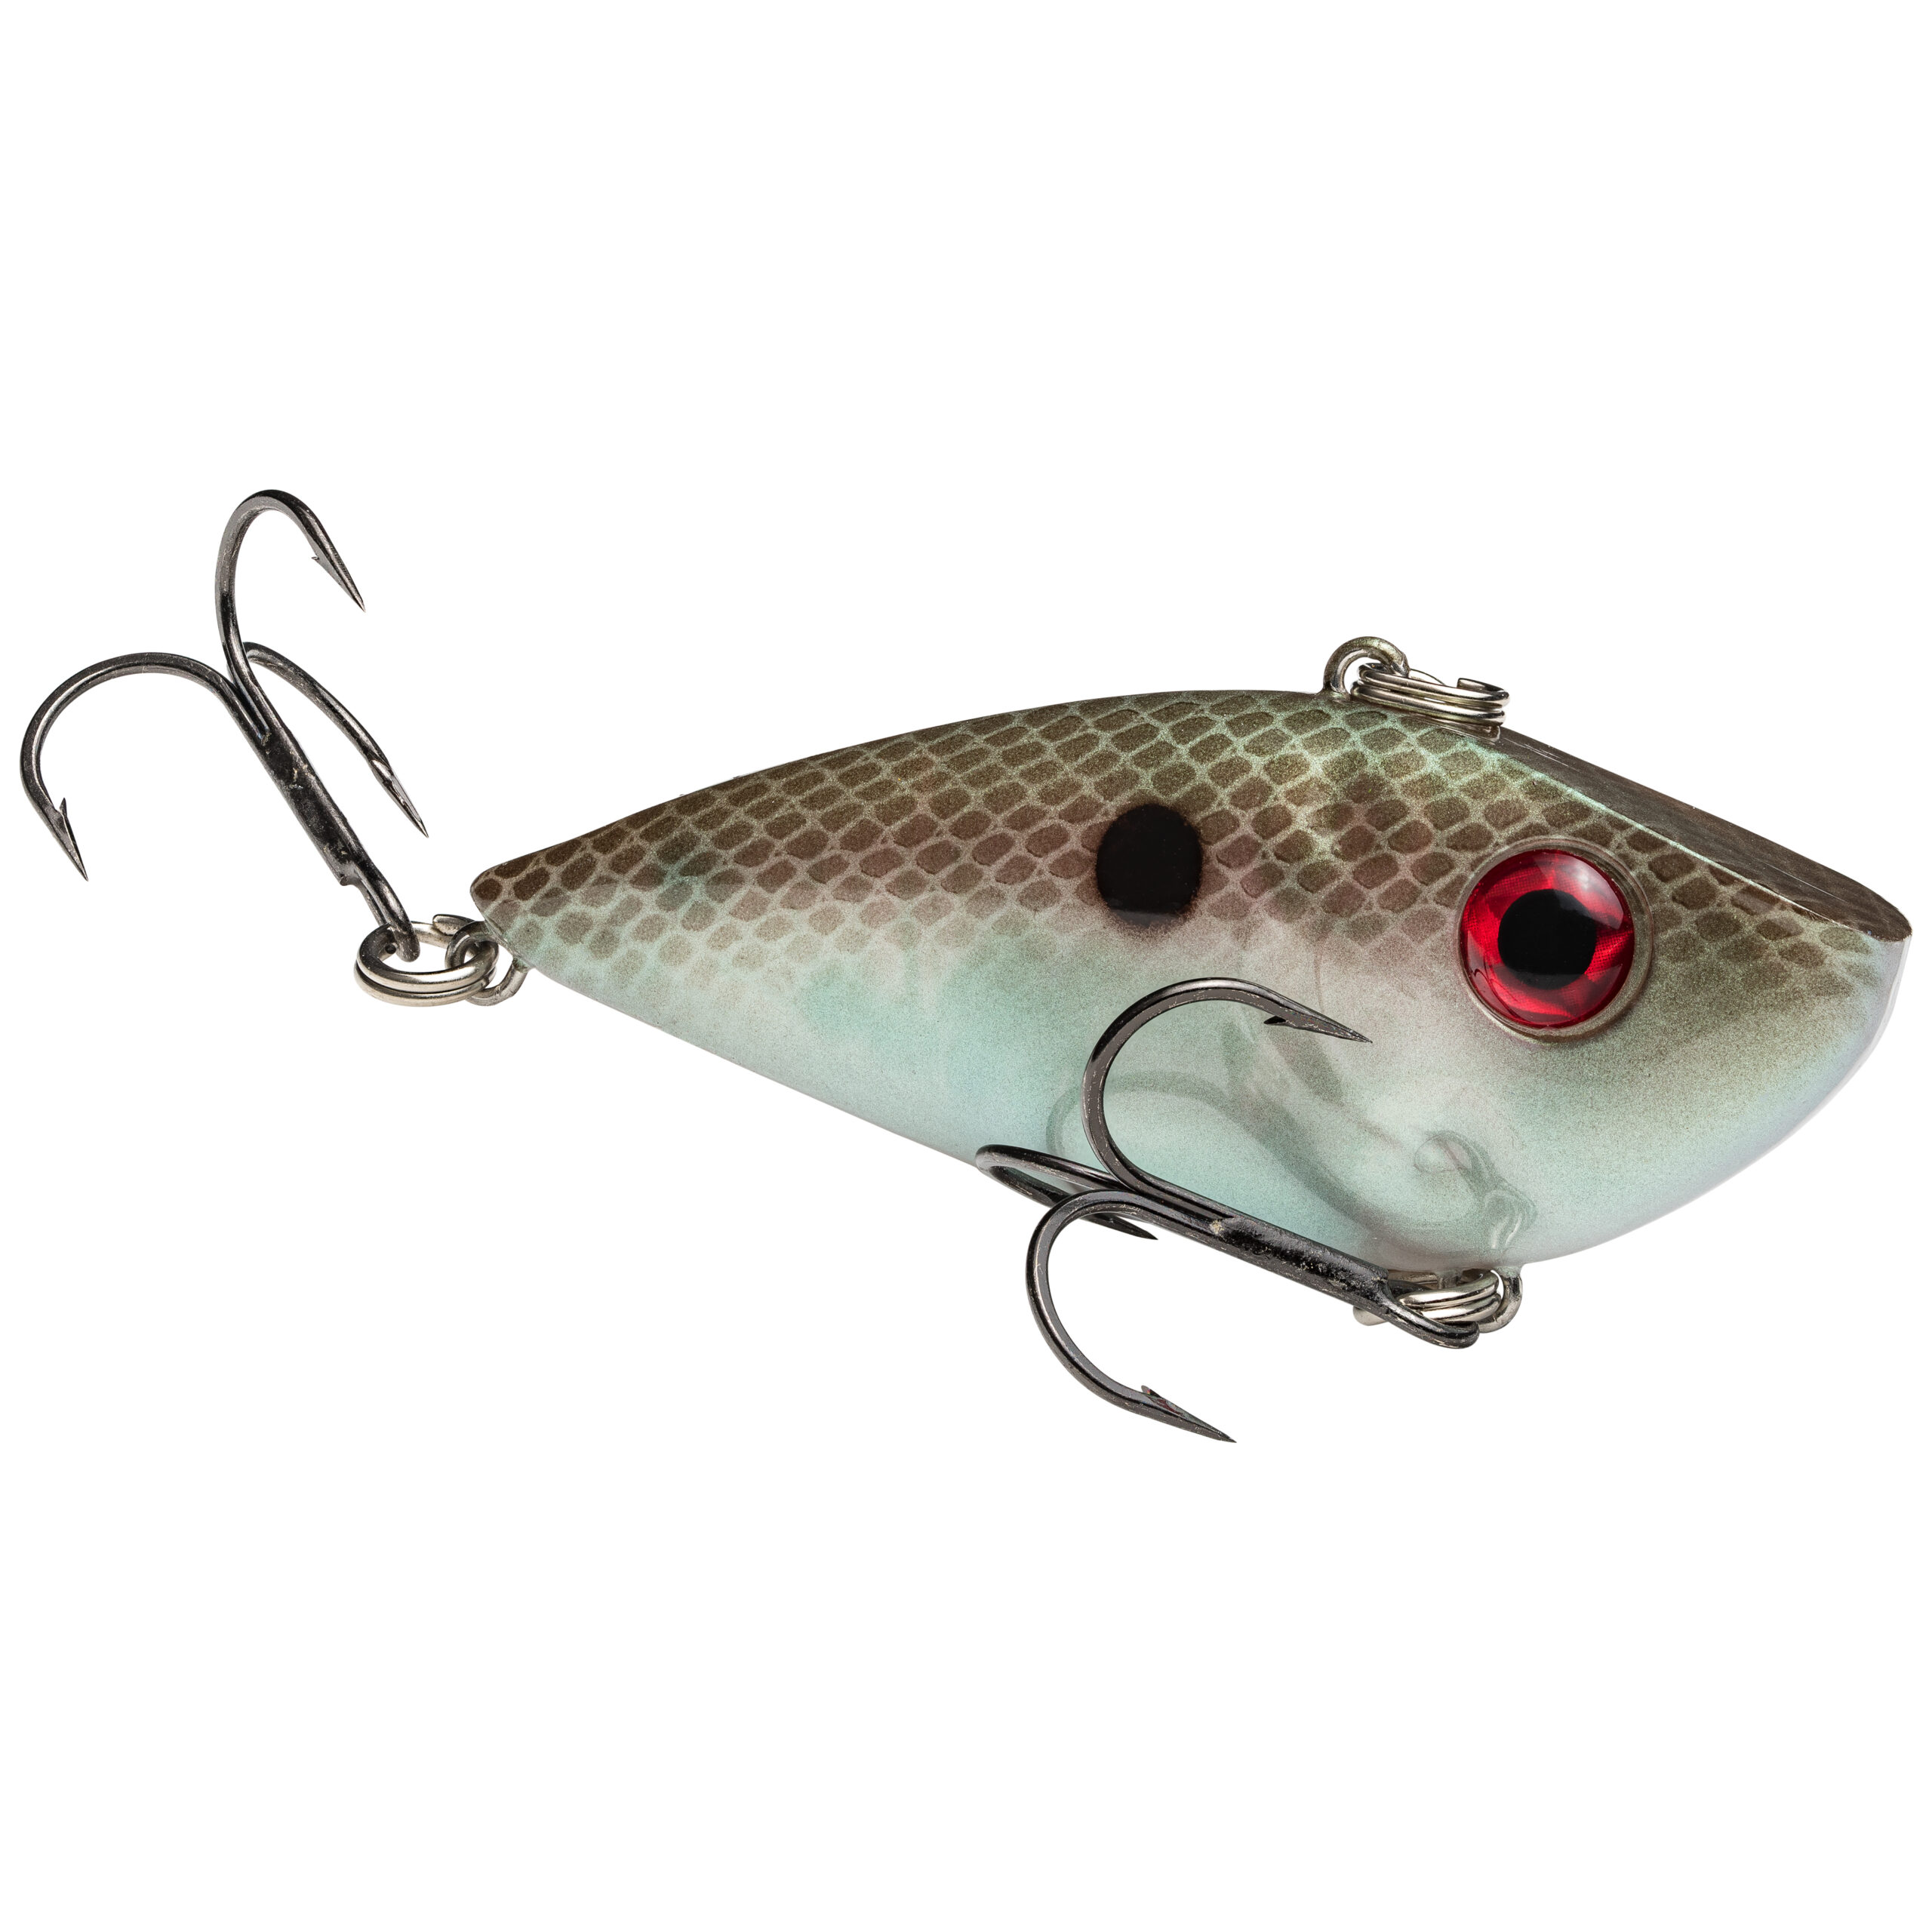 Strike King Lures – Crankbaits – Lipless Rattle Trap – Red Eyed Shad - 1/4oz - REYESD14-568 - Green Gizzard Shad